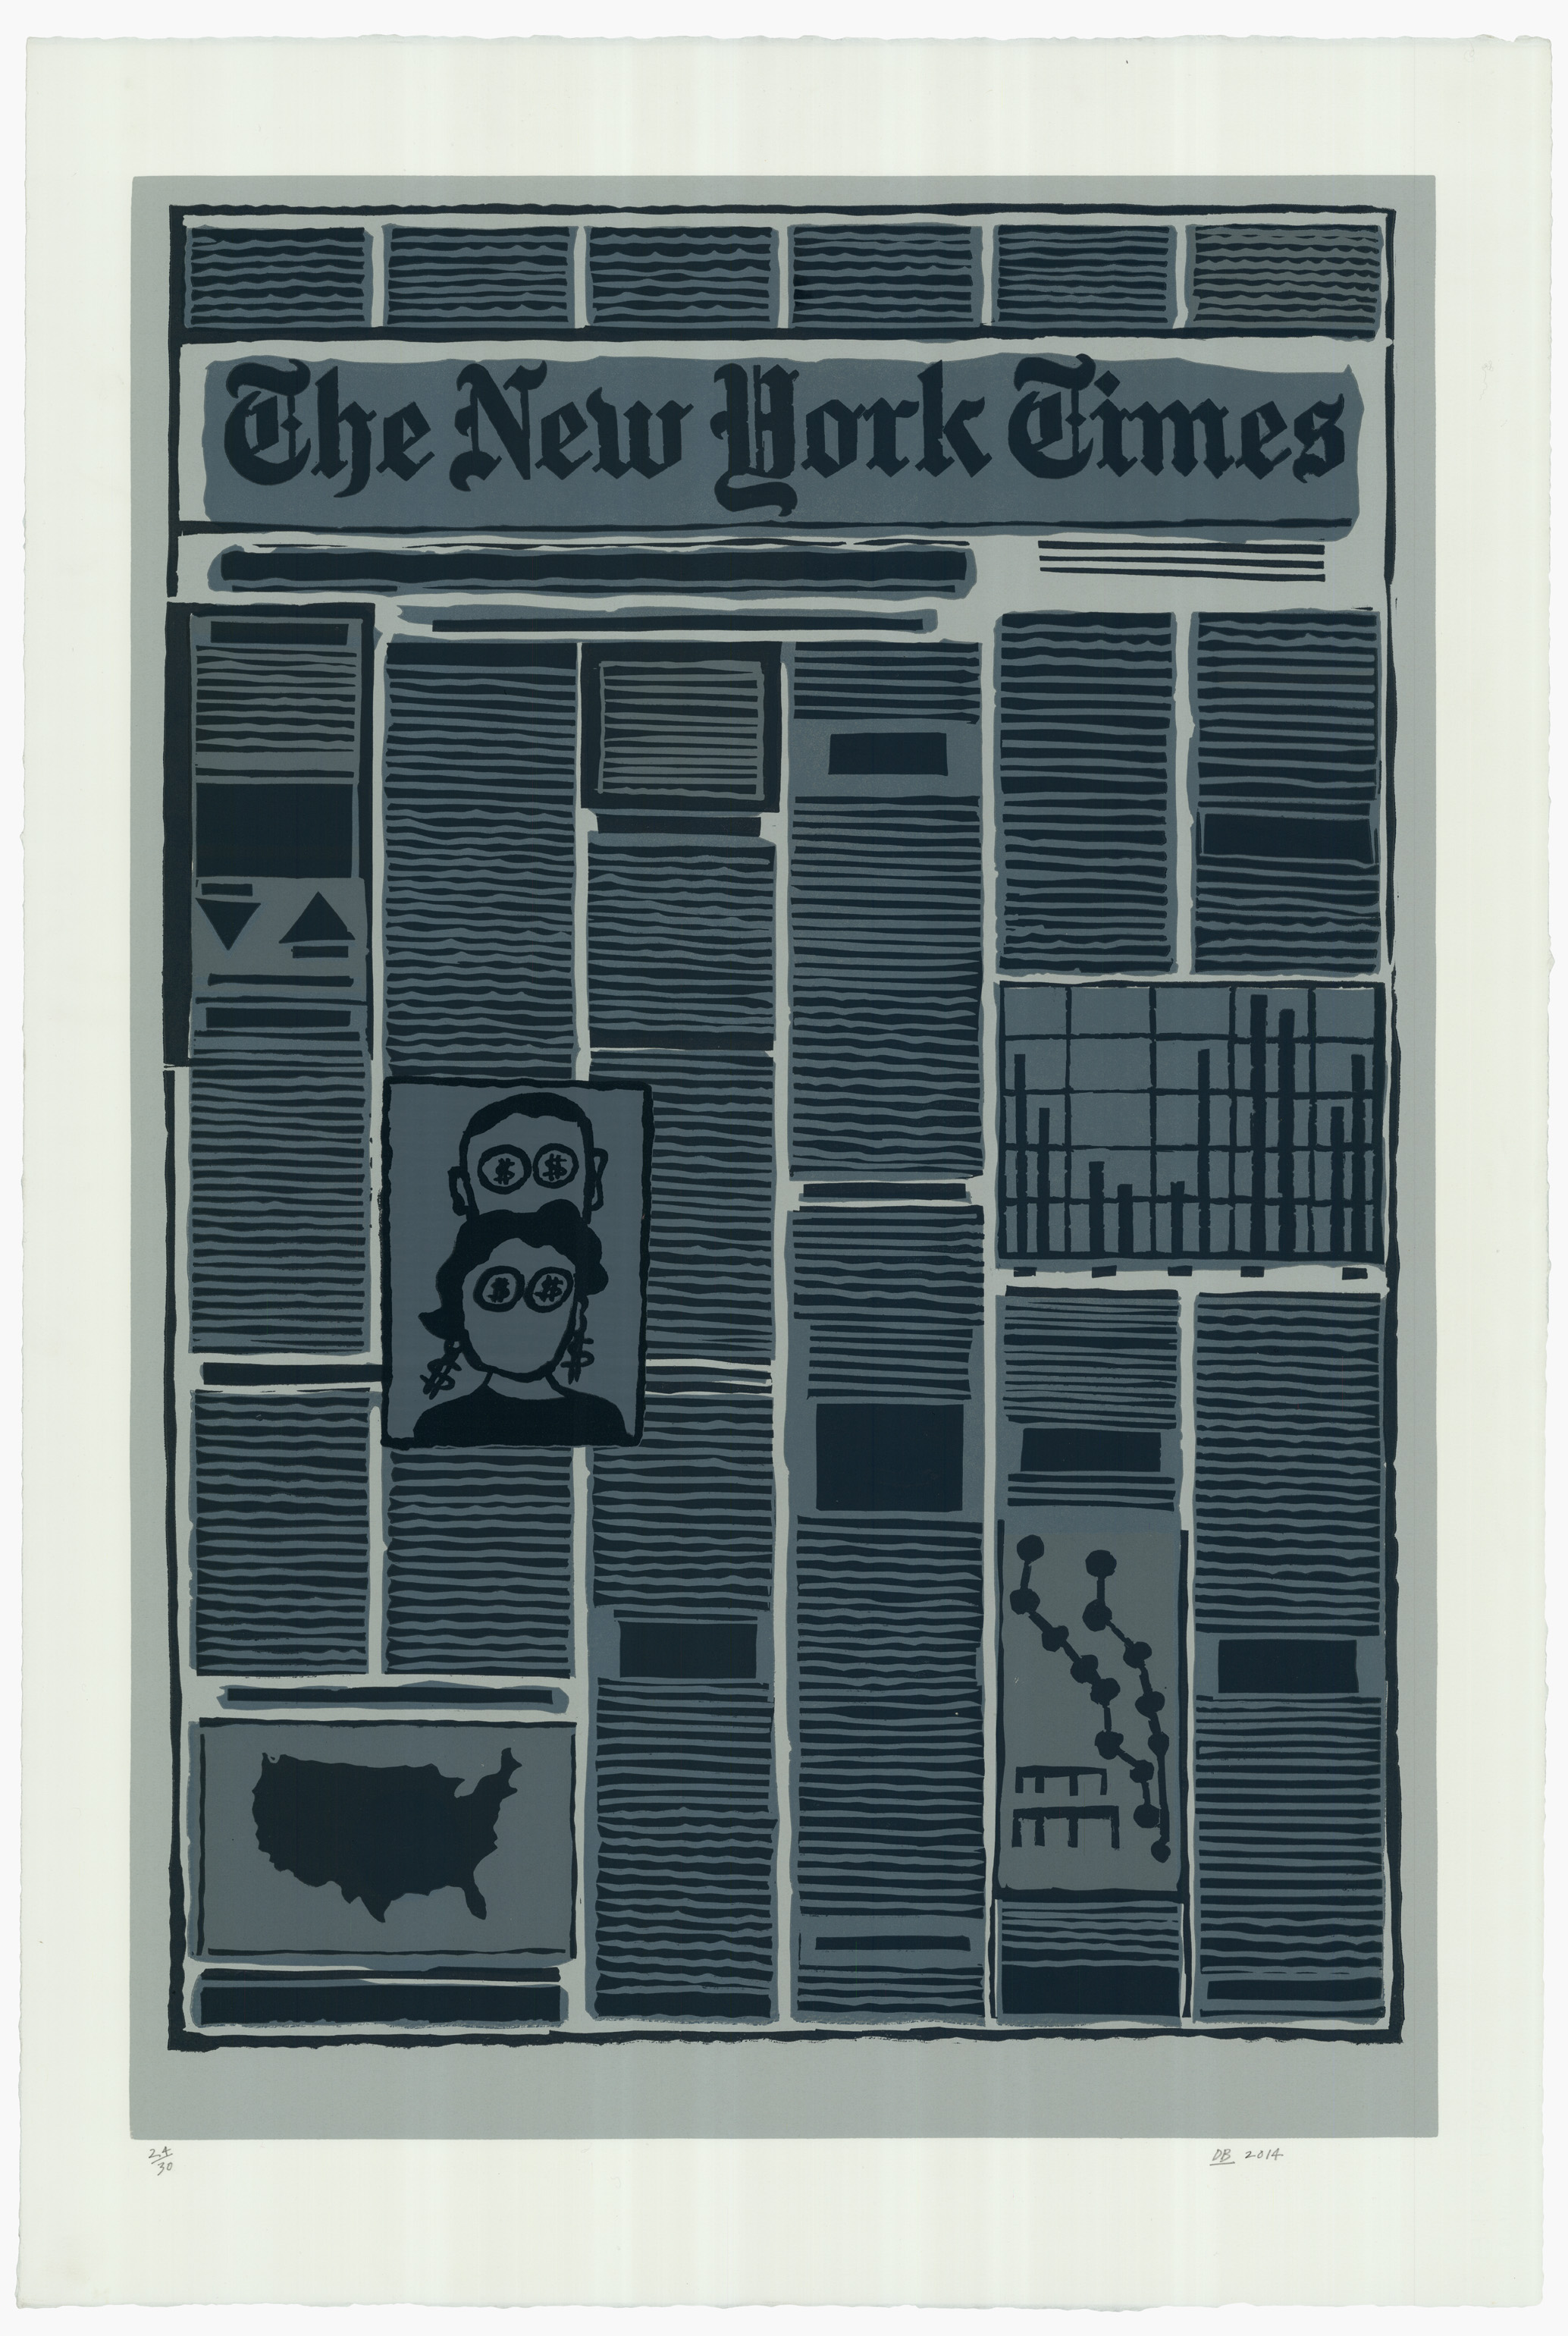 New York Times Financial Section